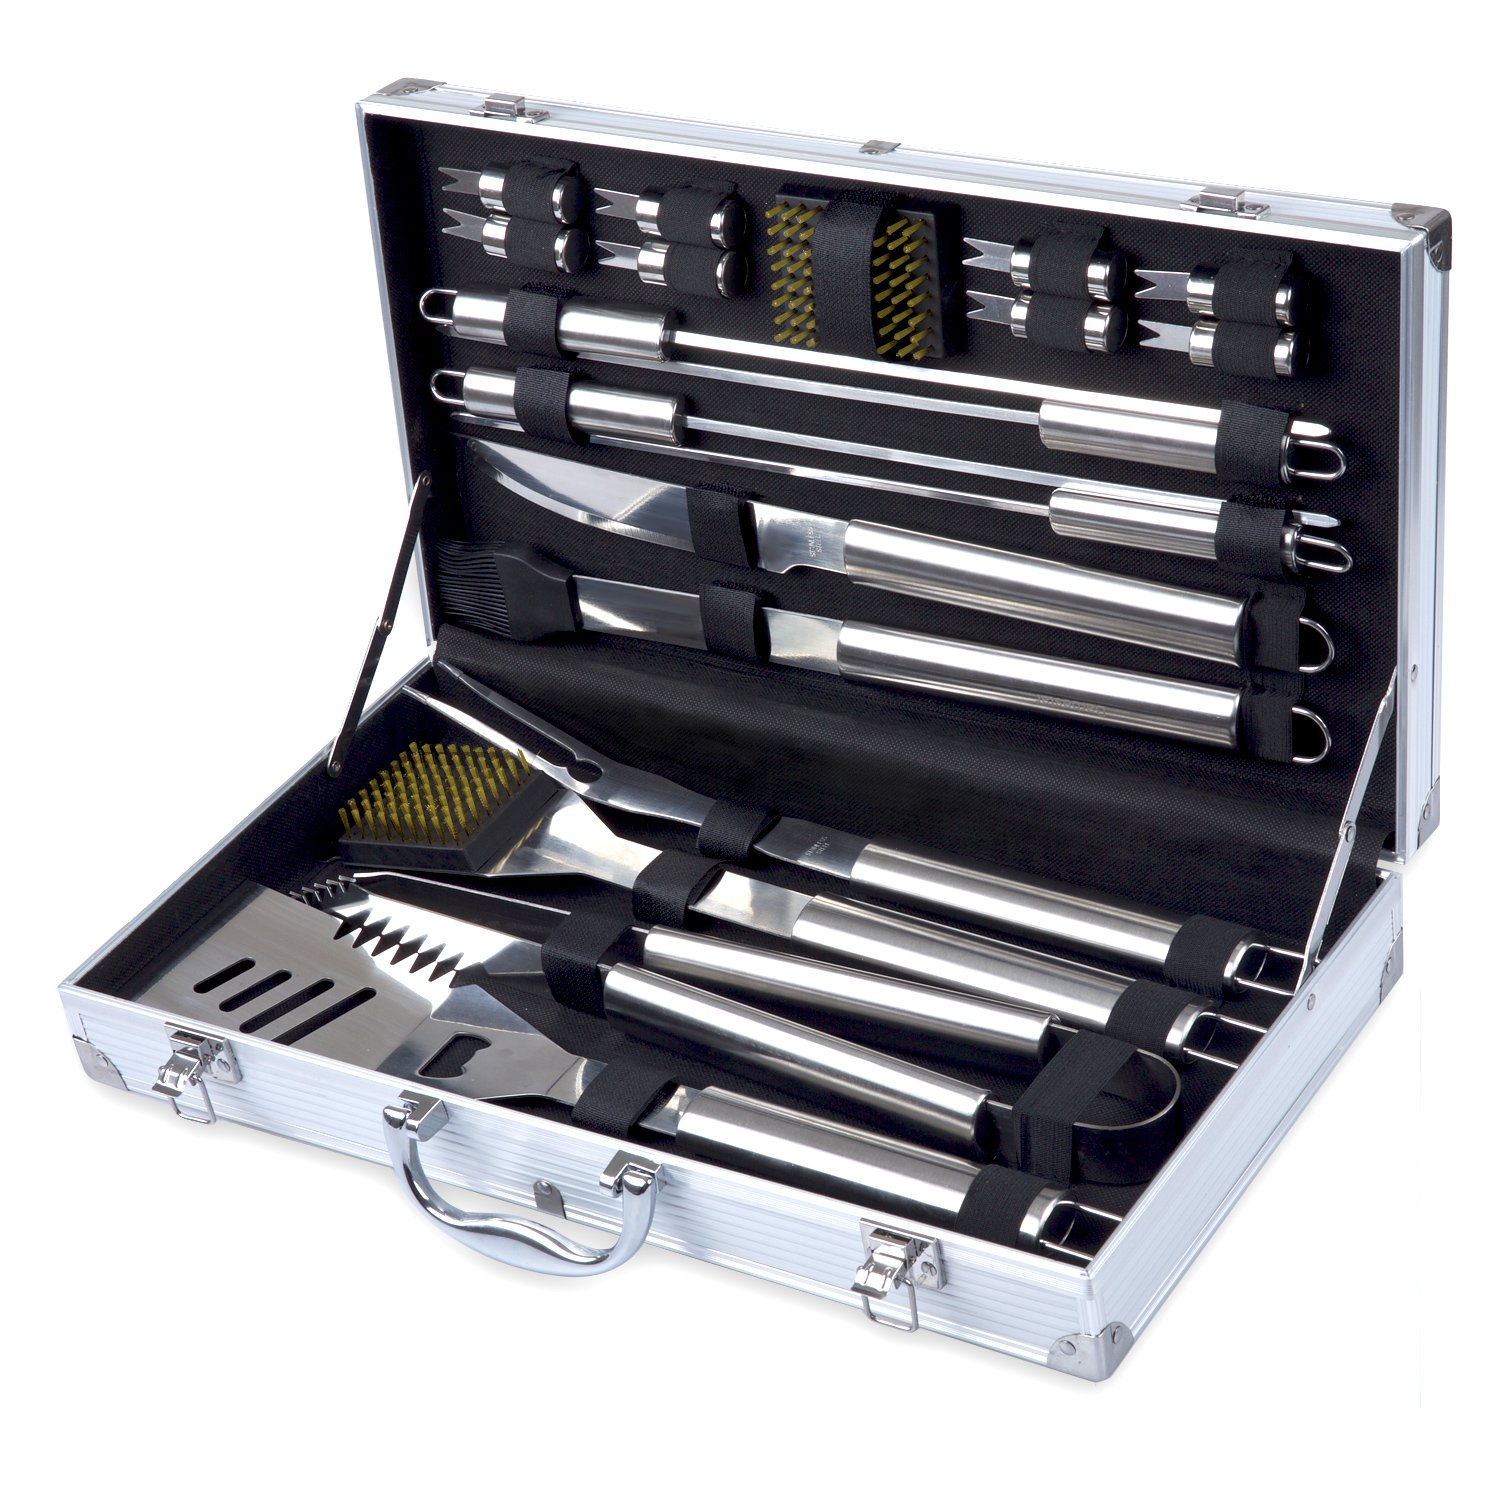 Barbestar 19 Piece Stainless Steel BBQ Tool Set